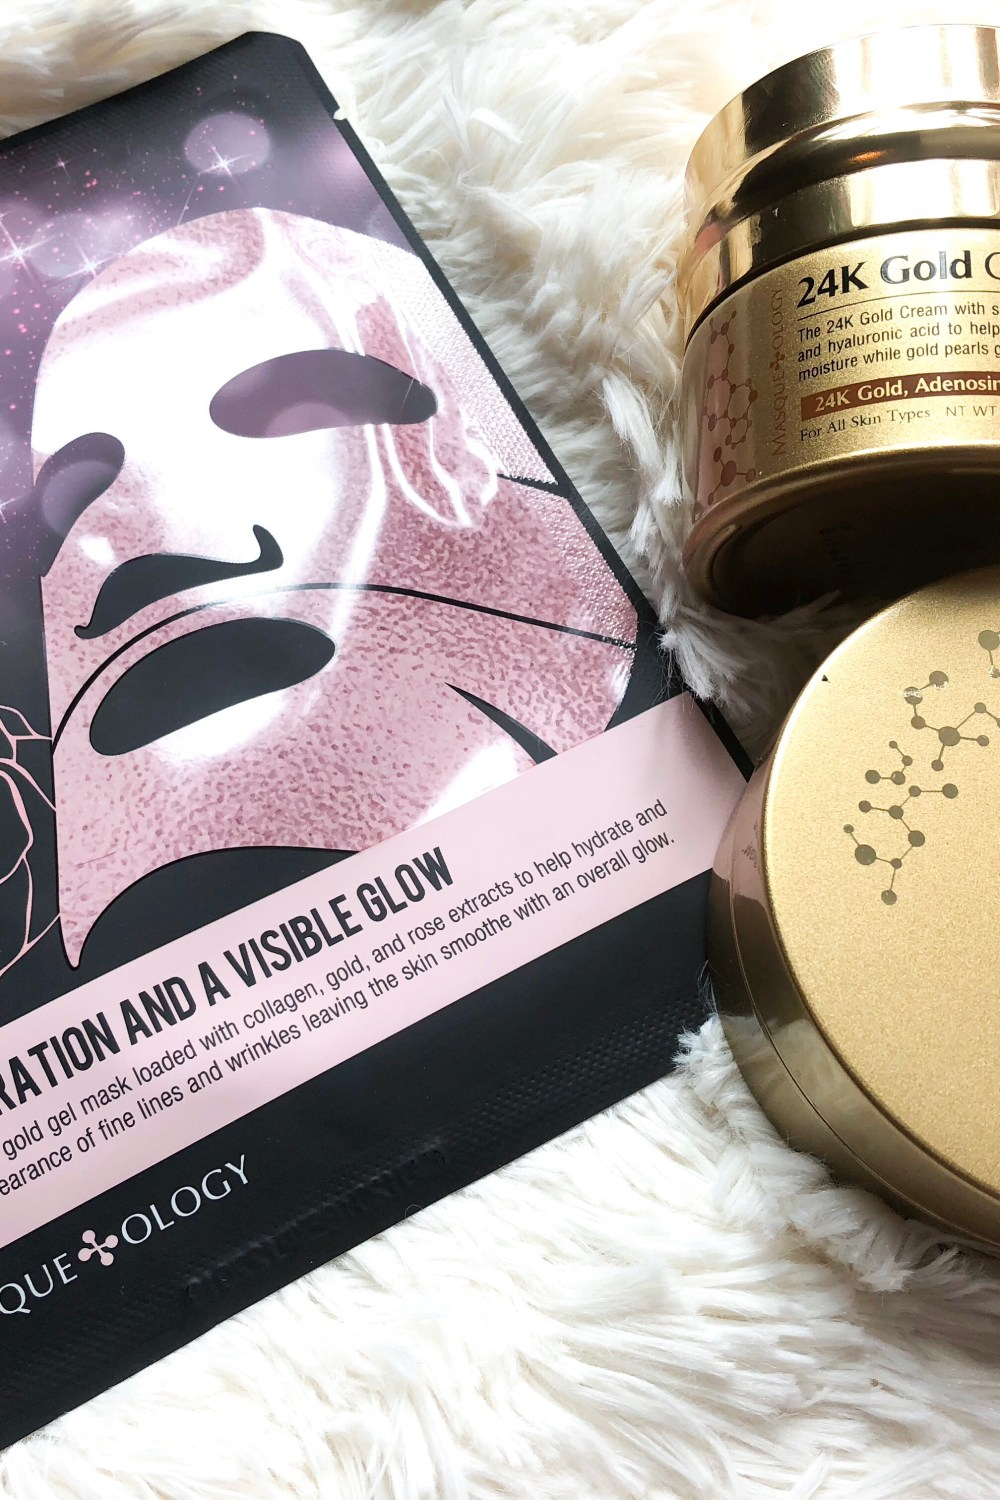 Masqueology Wild Rose Hydro-Gel Gold Mask| Everything You Need to Know